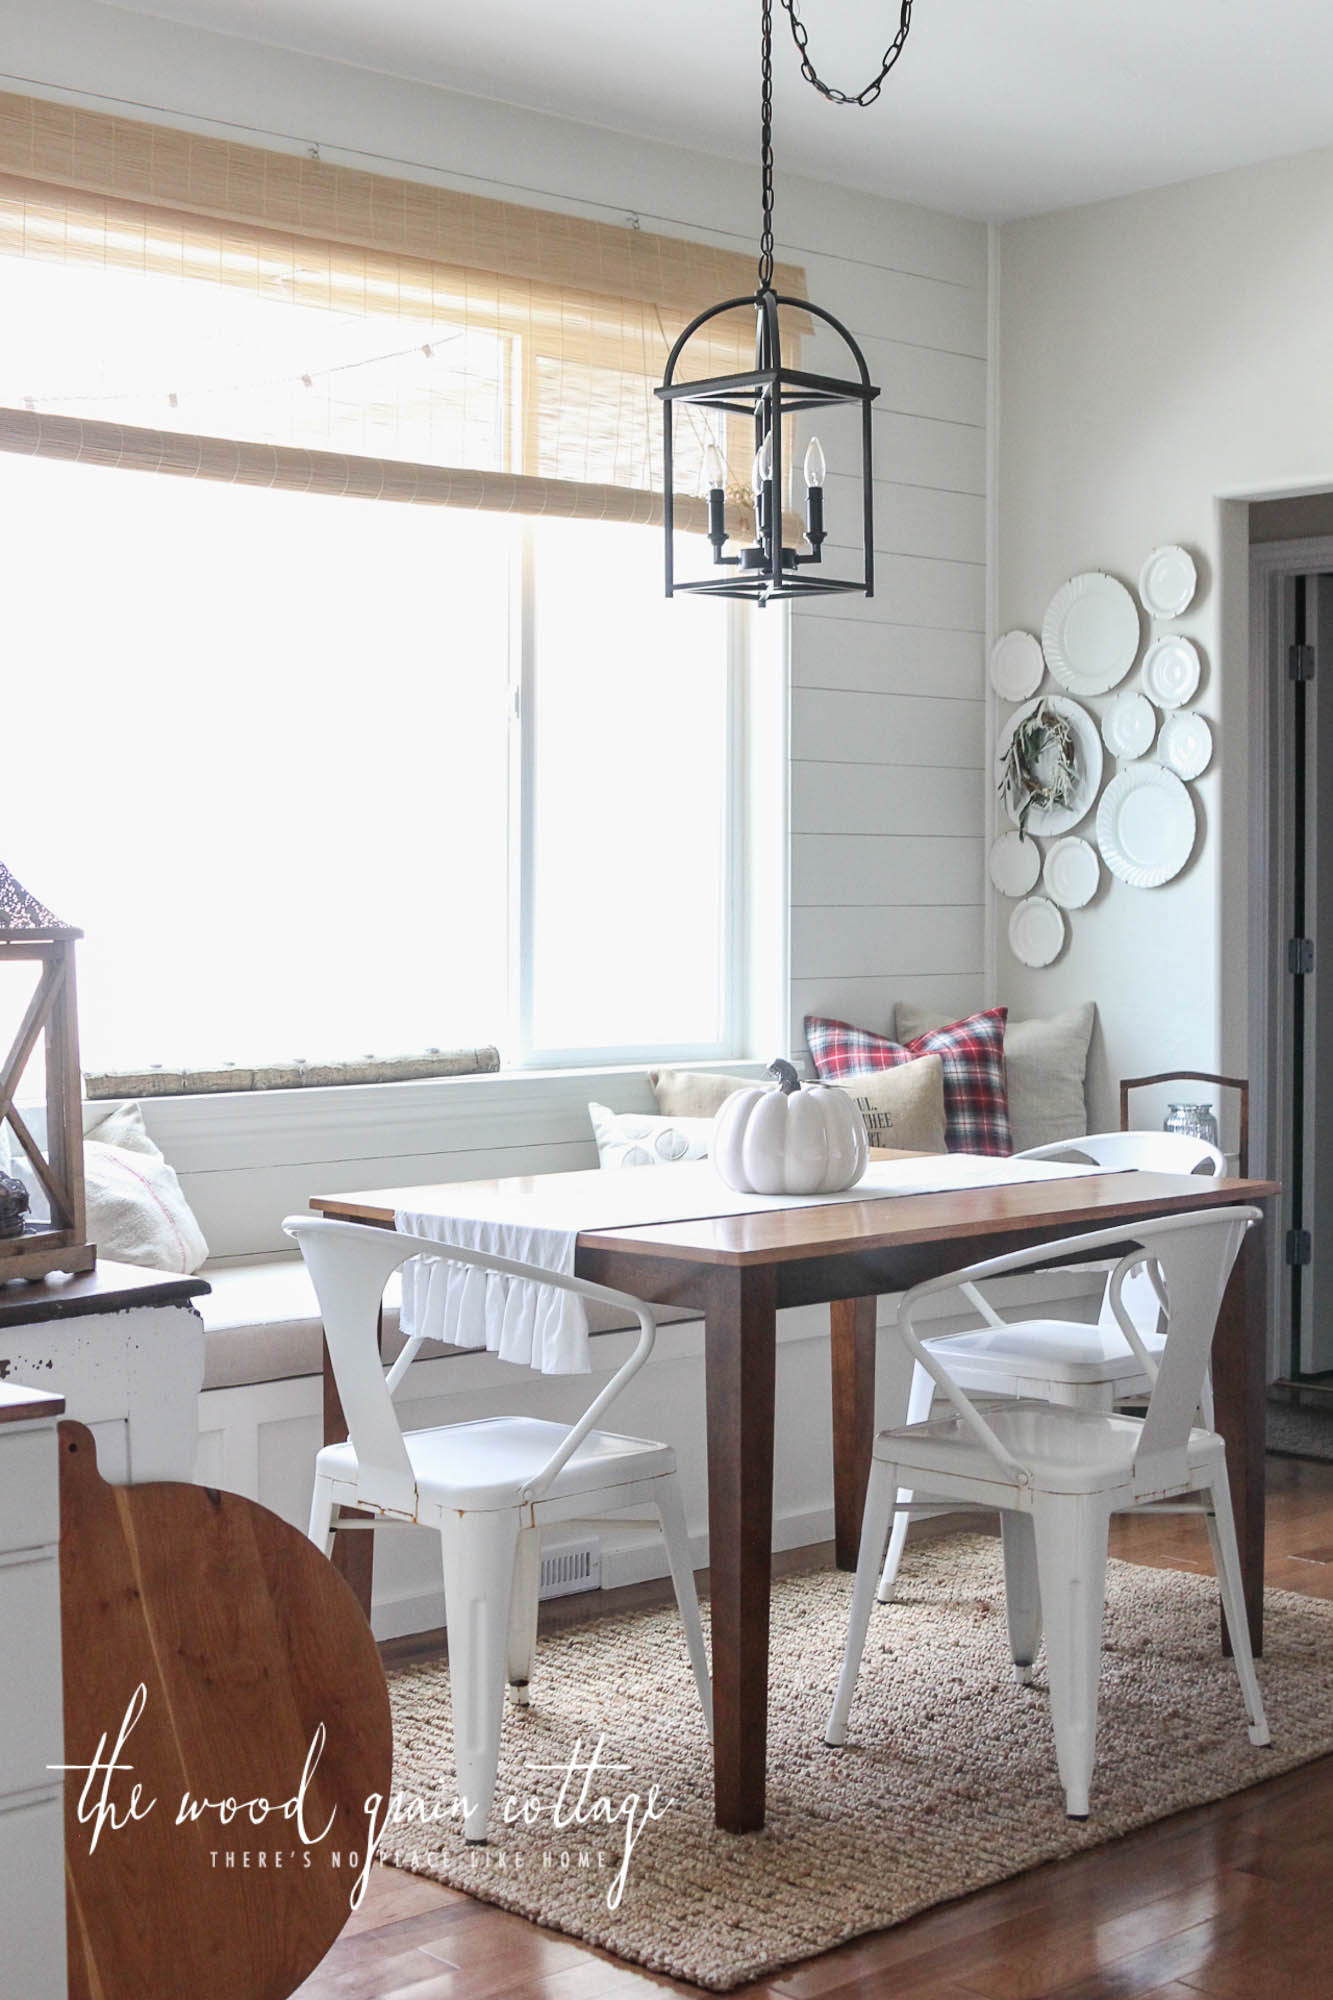 Comfortable cottage banquette by the window